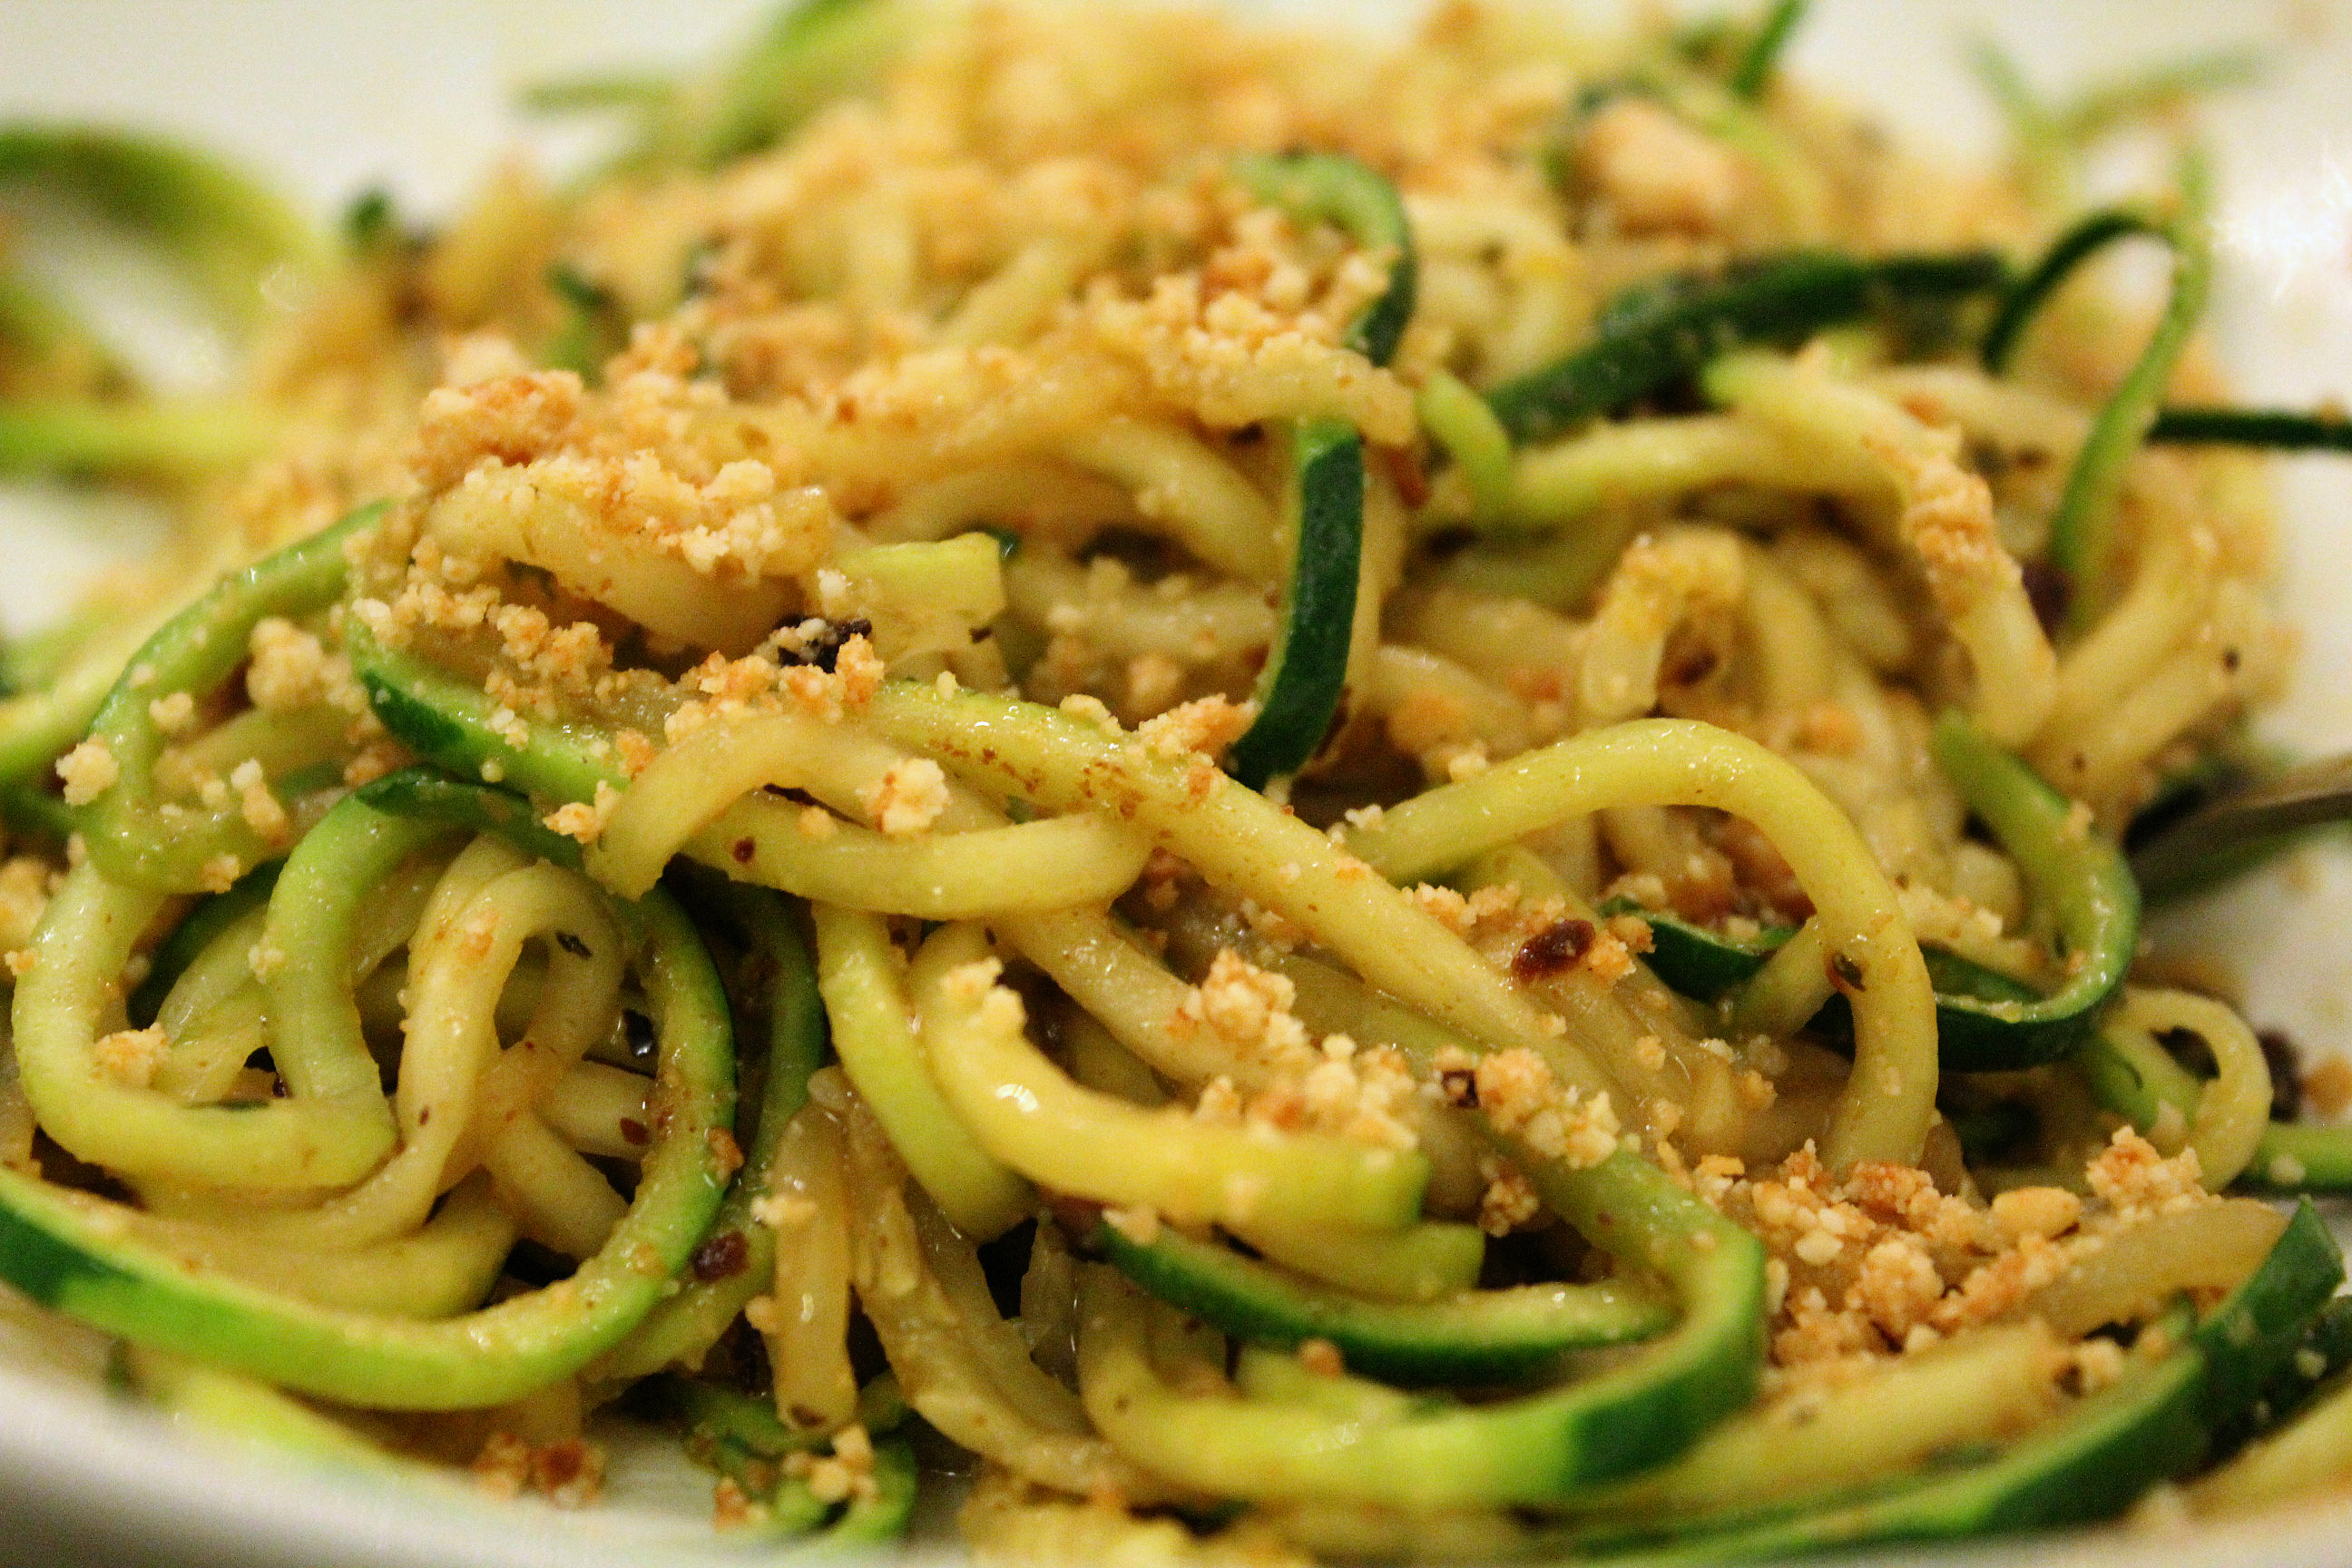 zucchini noodles in oil and garlic zoodles